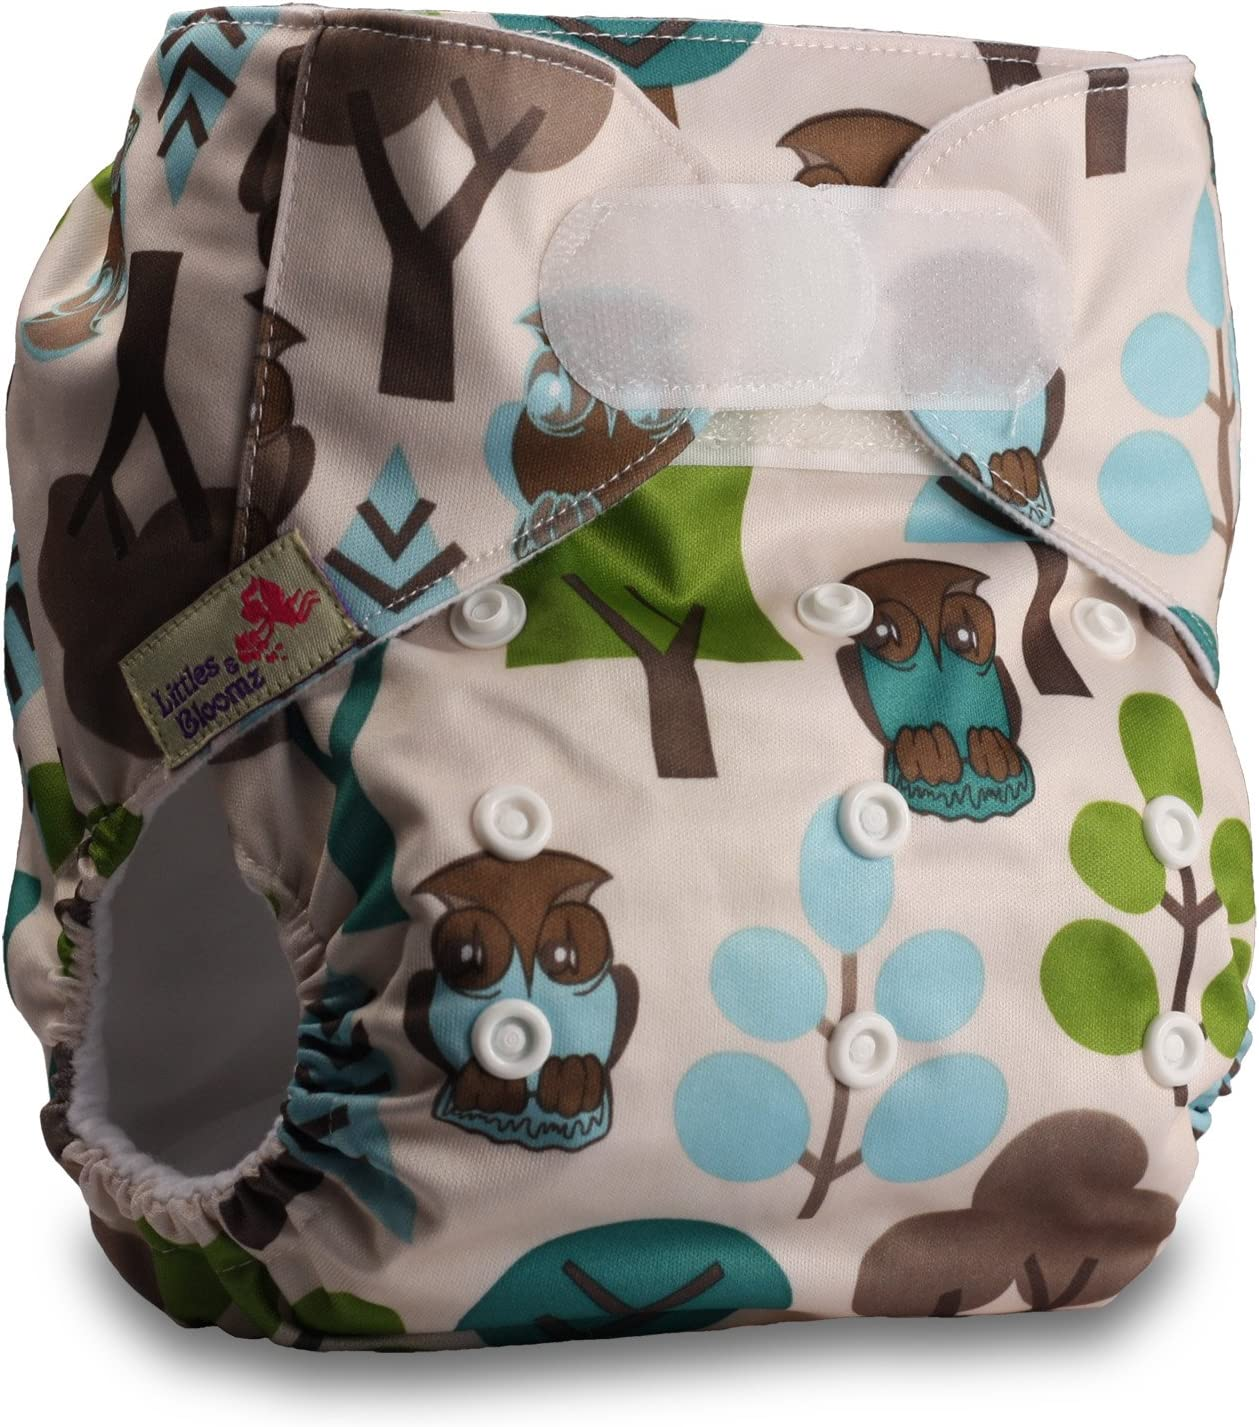 Reusable Pocket Cloth Nappy Set of 1 Fastener: Hook-Loop with 1 Bamboo Charcoal Insert Pattern 40 Littles /& Bloomz